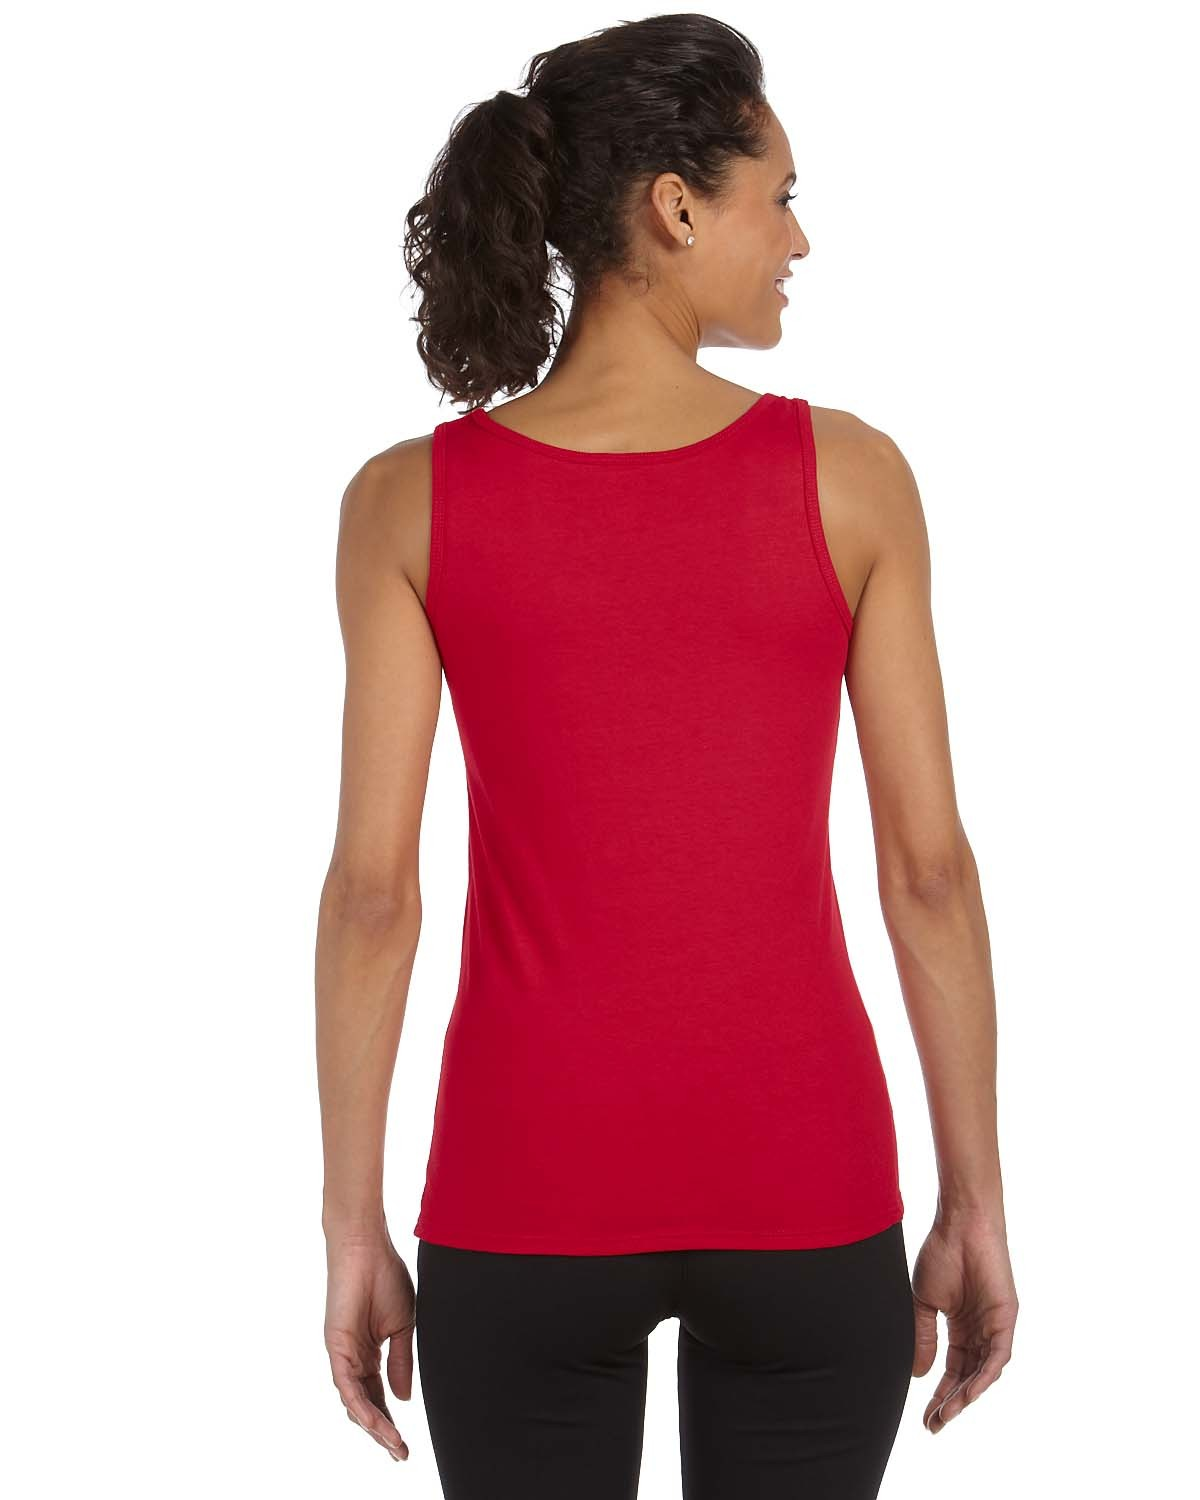 2d484da8 Gildan G642L Ladies' Softstyle 4.5 oz. Fitted Tank